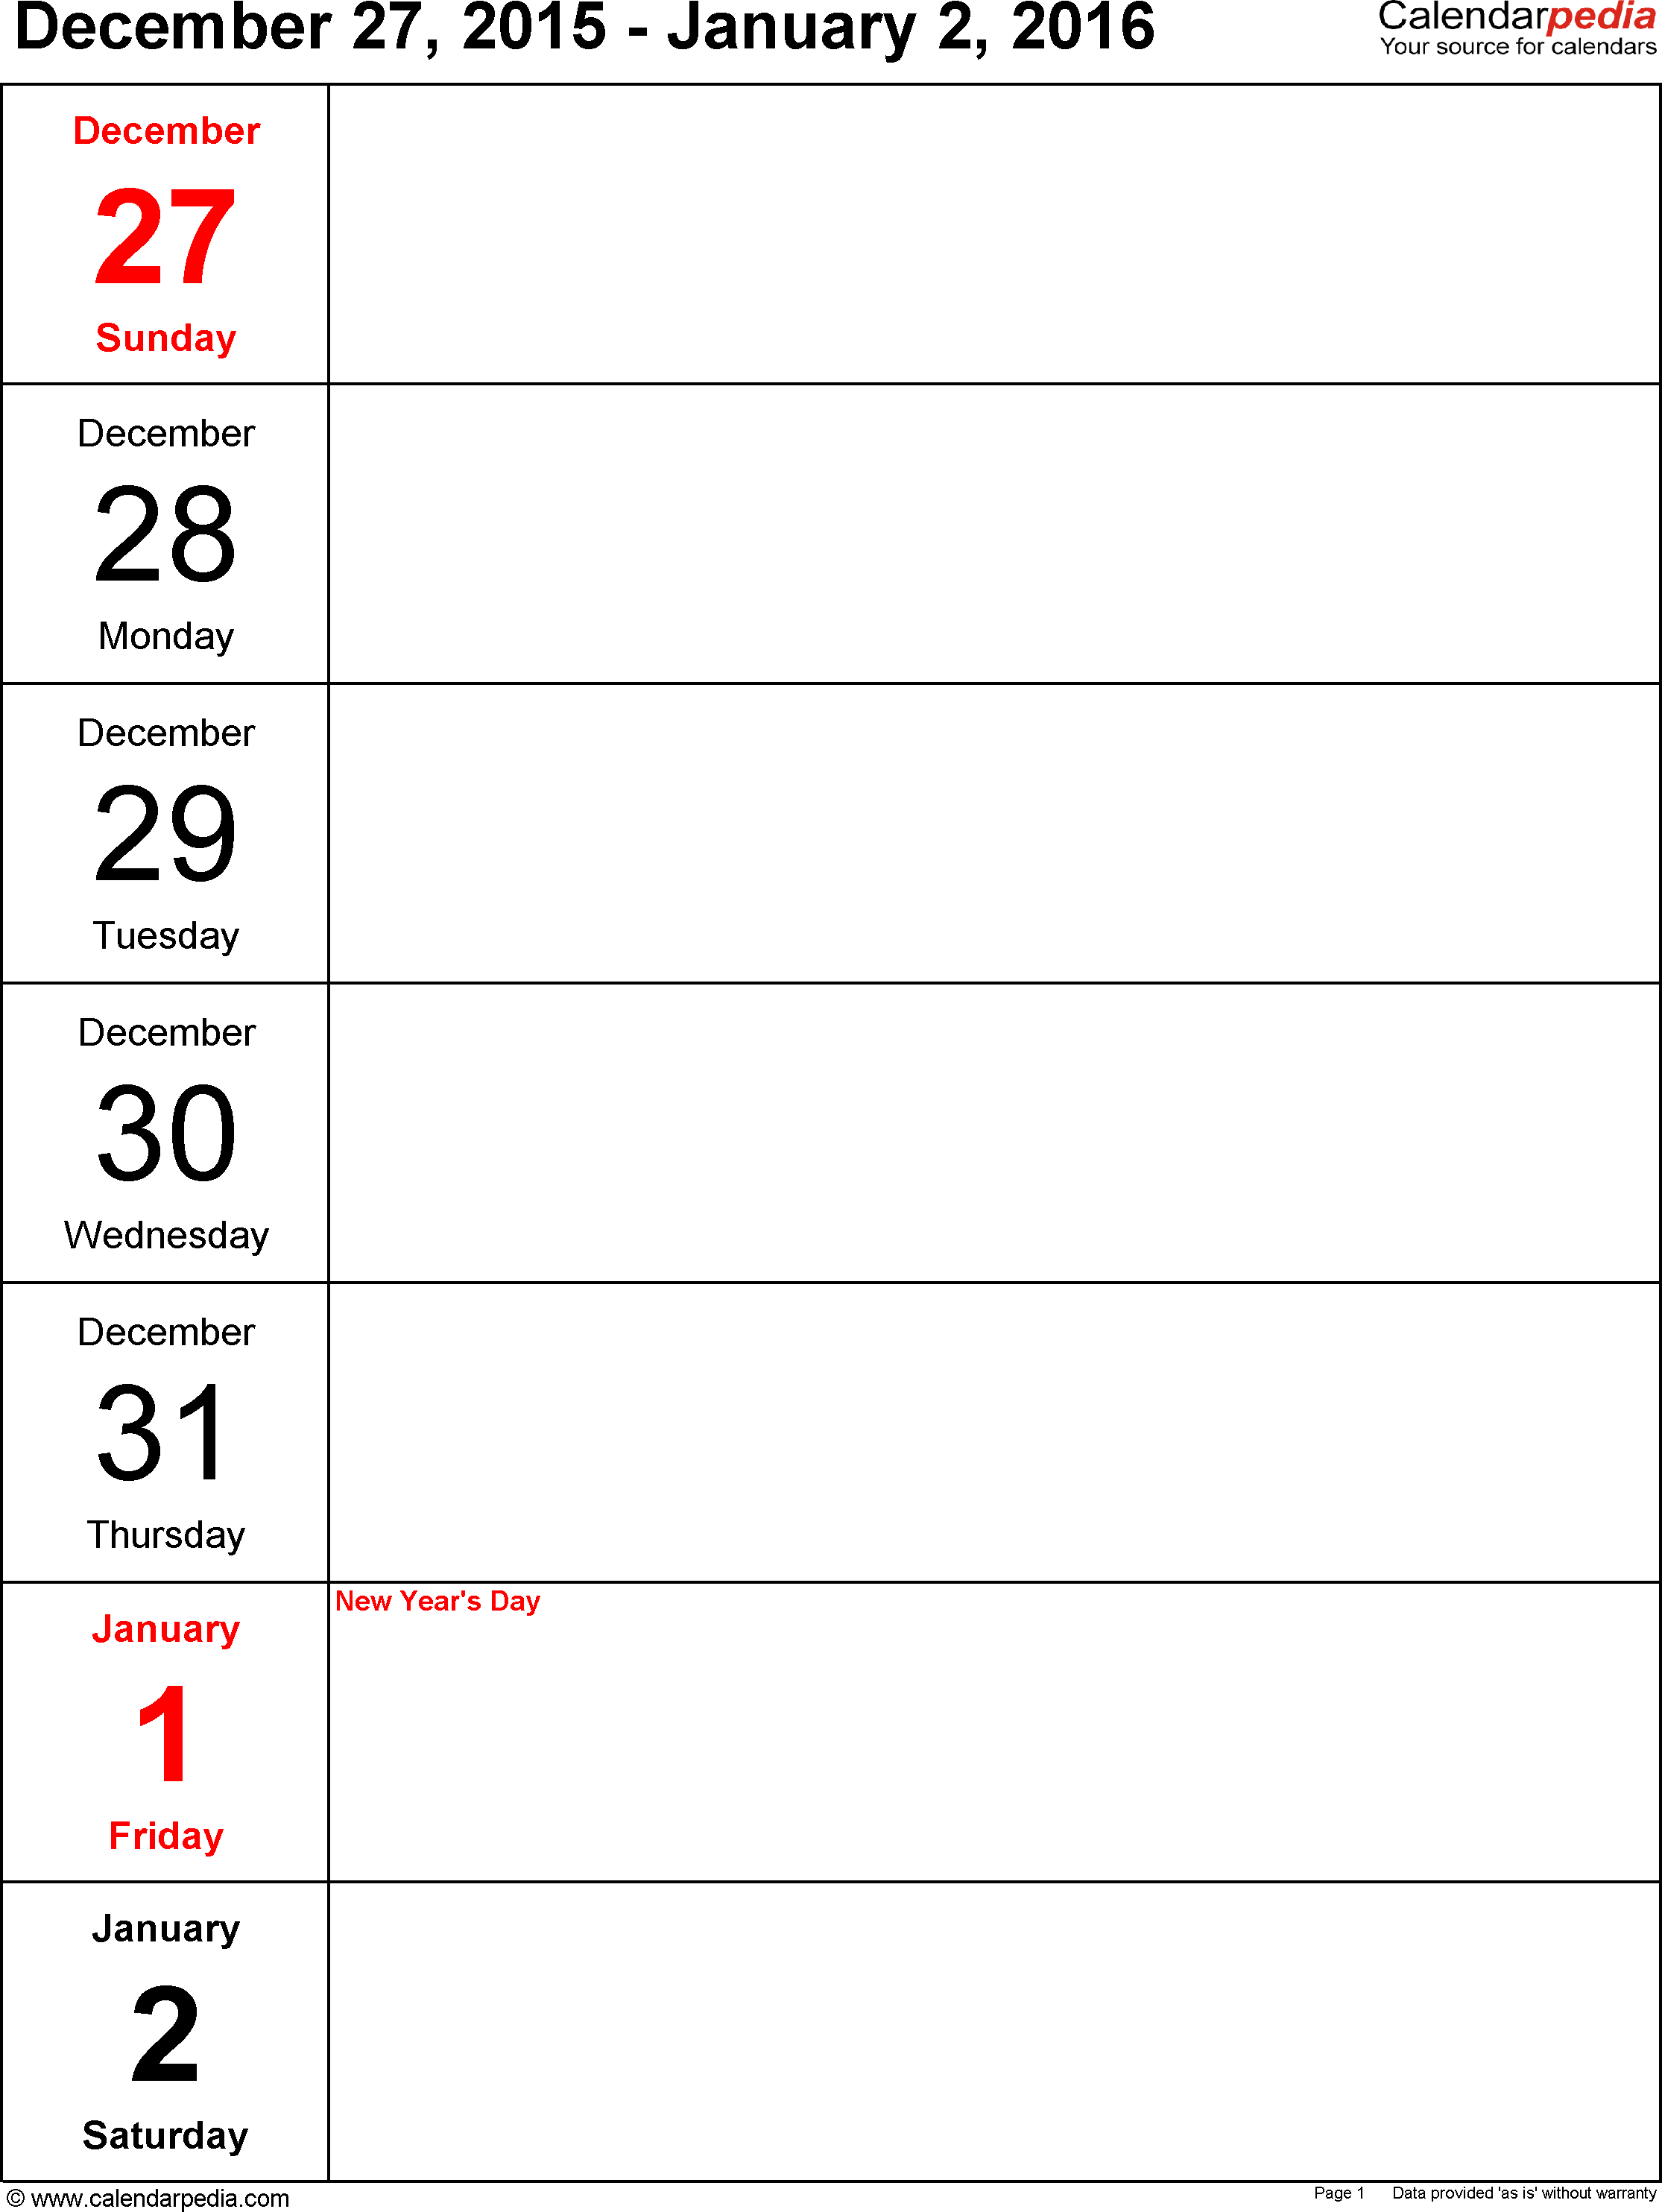 Daily Week Calendar weekly calendar 2016 for pdf - 12 free printable templates